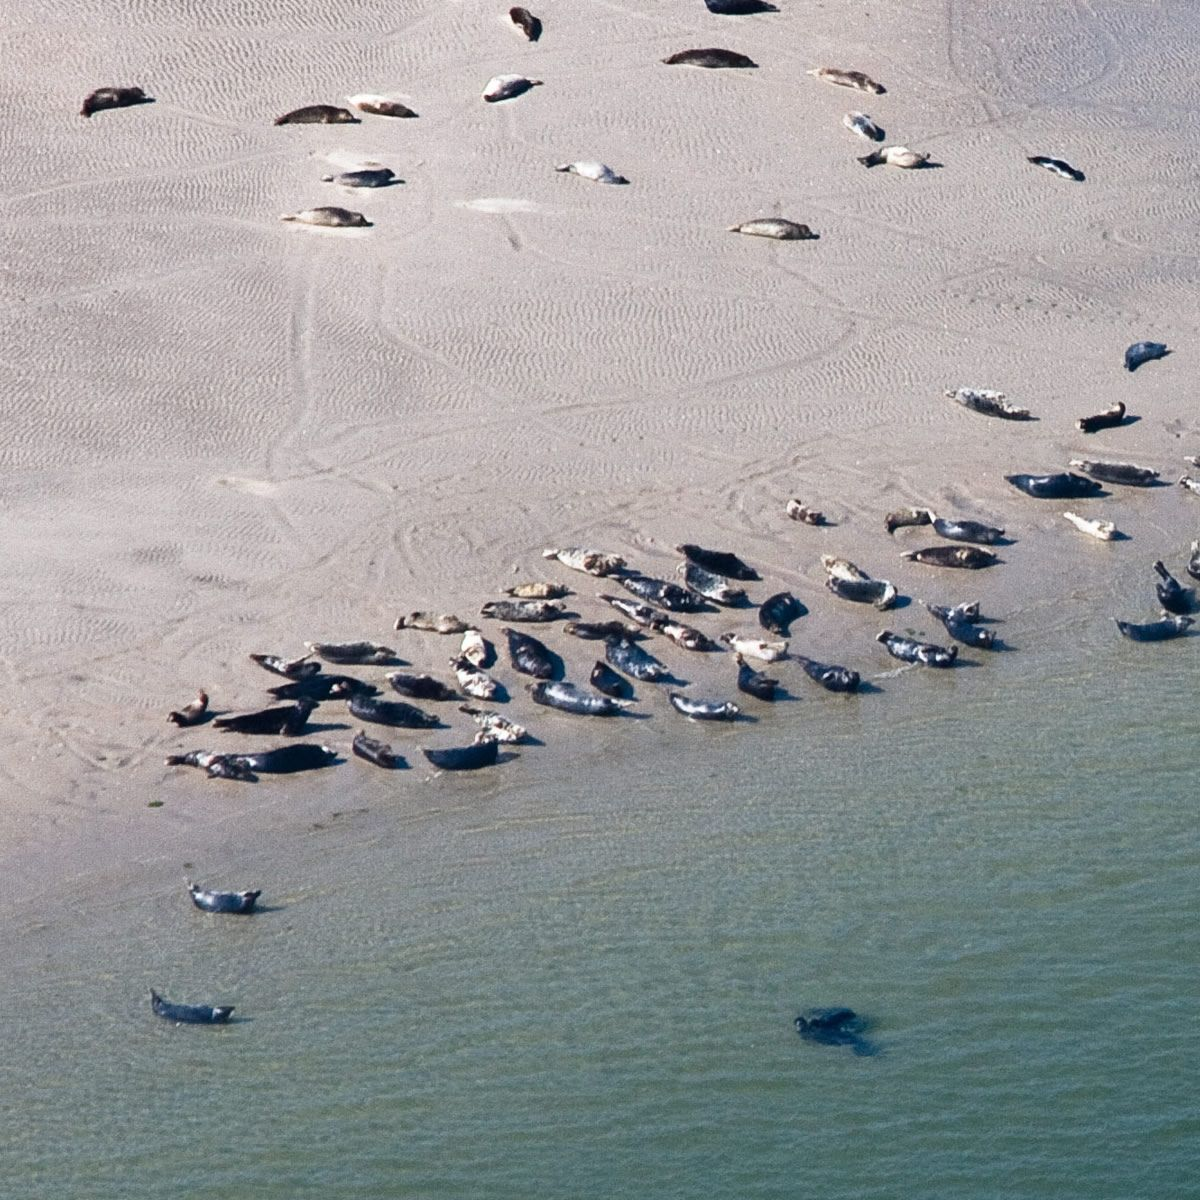 Large groups of Seals